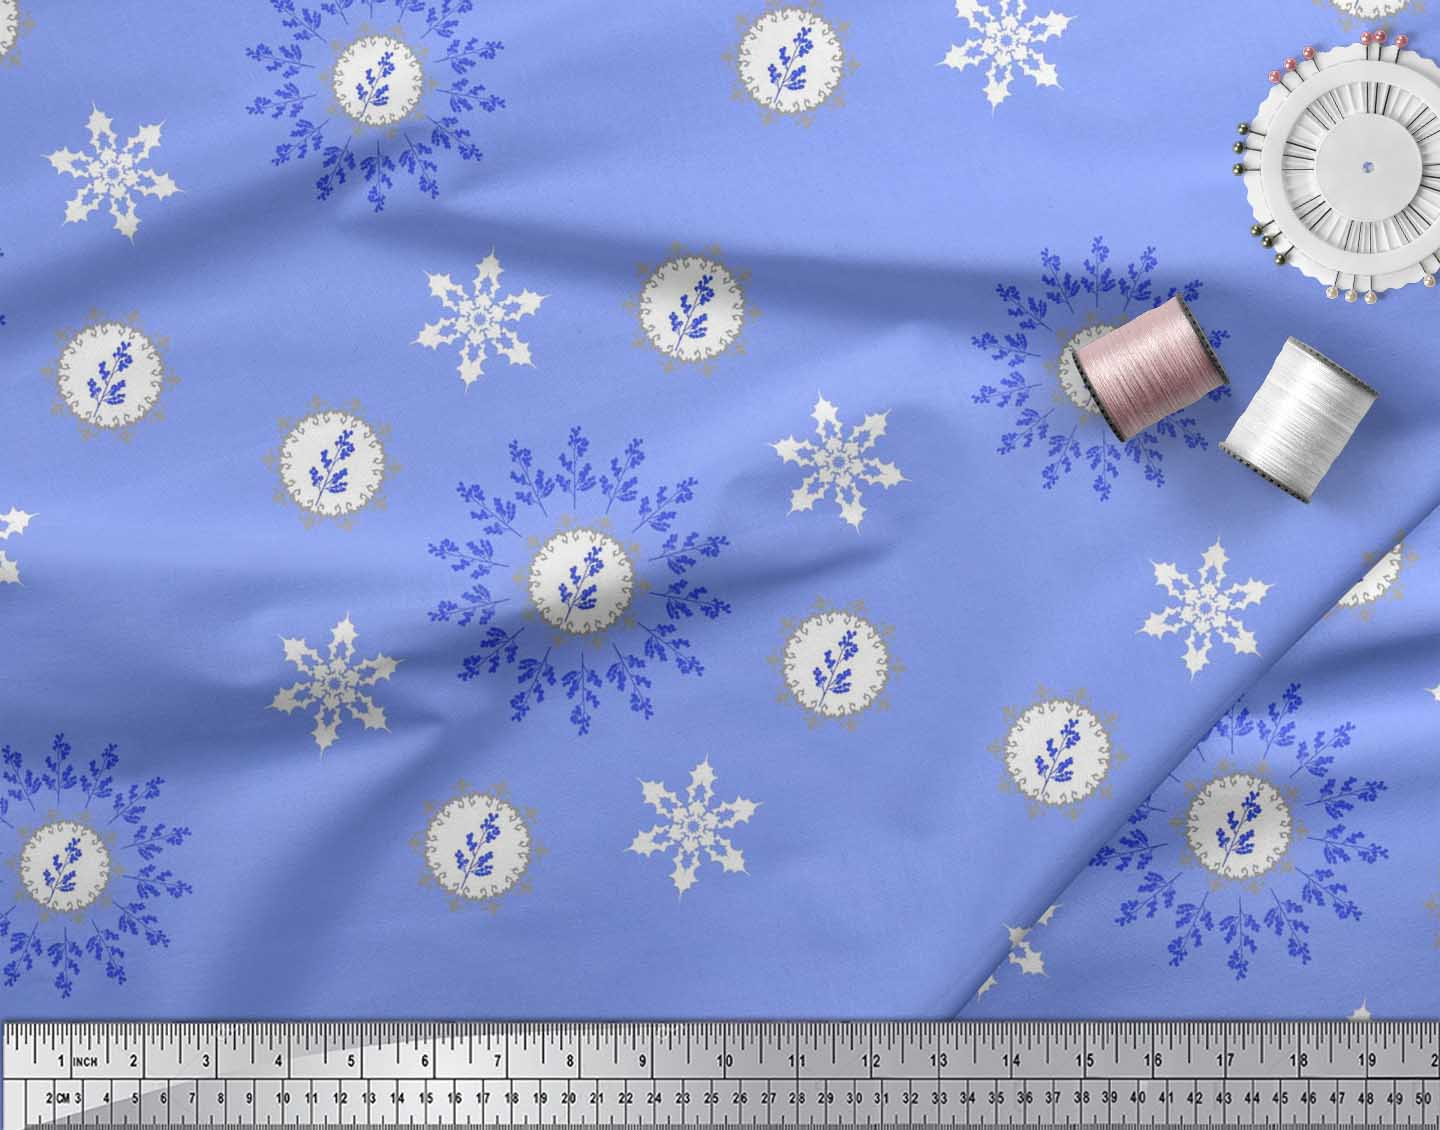 Soimoi-Fabric-Berries-amp-Damask-Decorative-Printed-Craft-Fabric-bty-DC-513A thumbnail 31